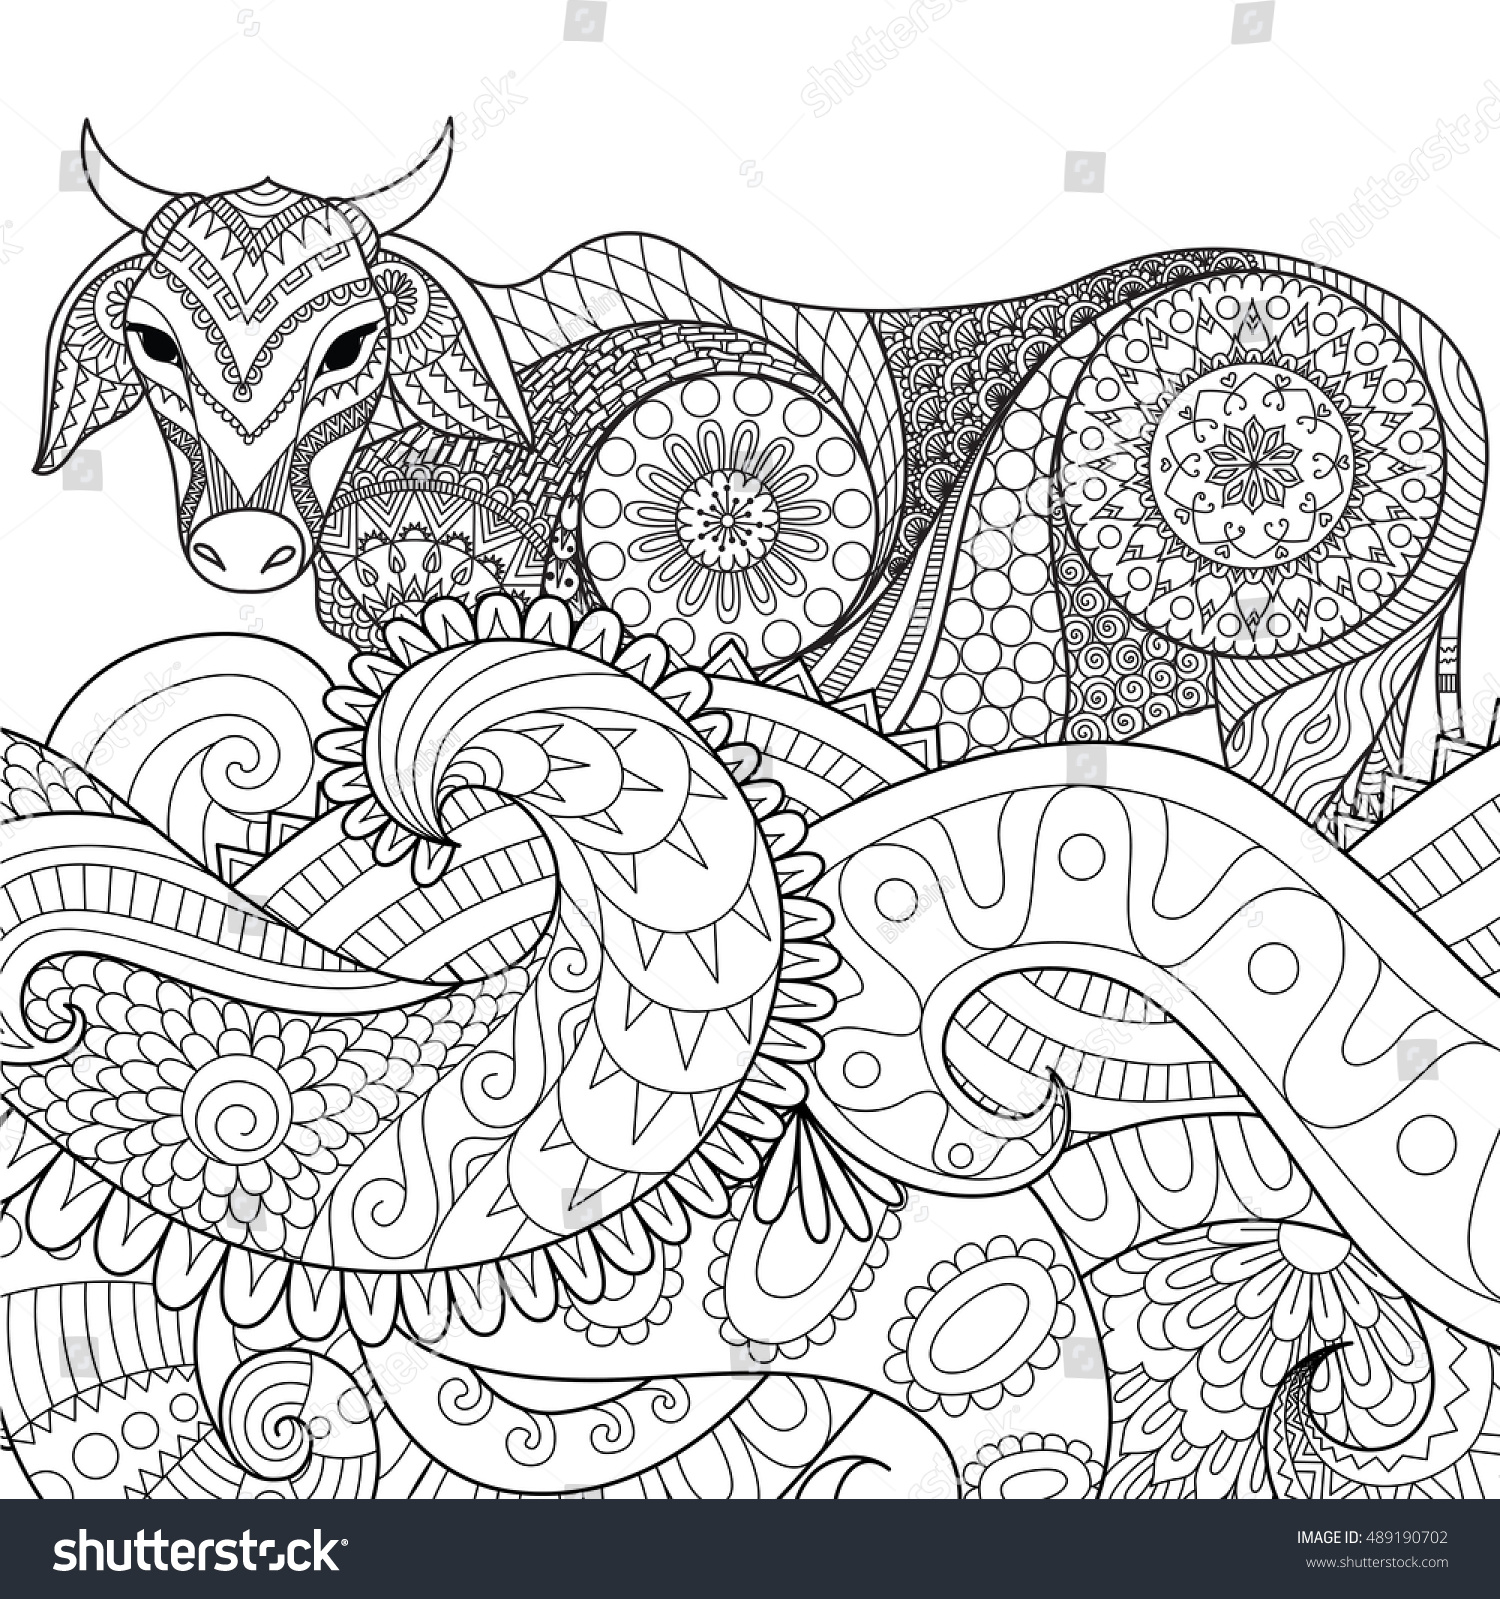 Zendoodle Design Of Cow Swimming In The Ocean For Adult Coloring Book Pages